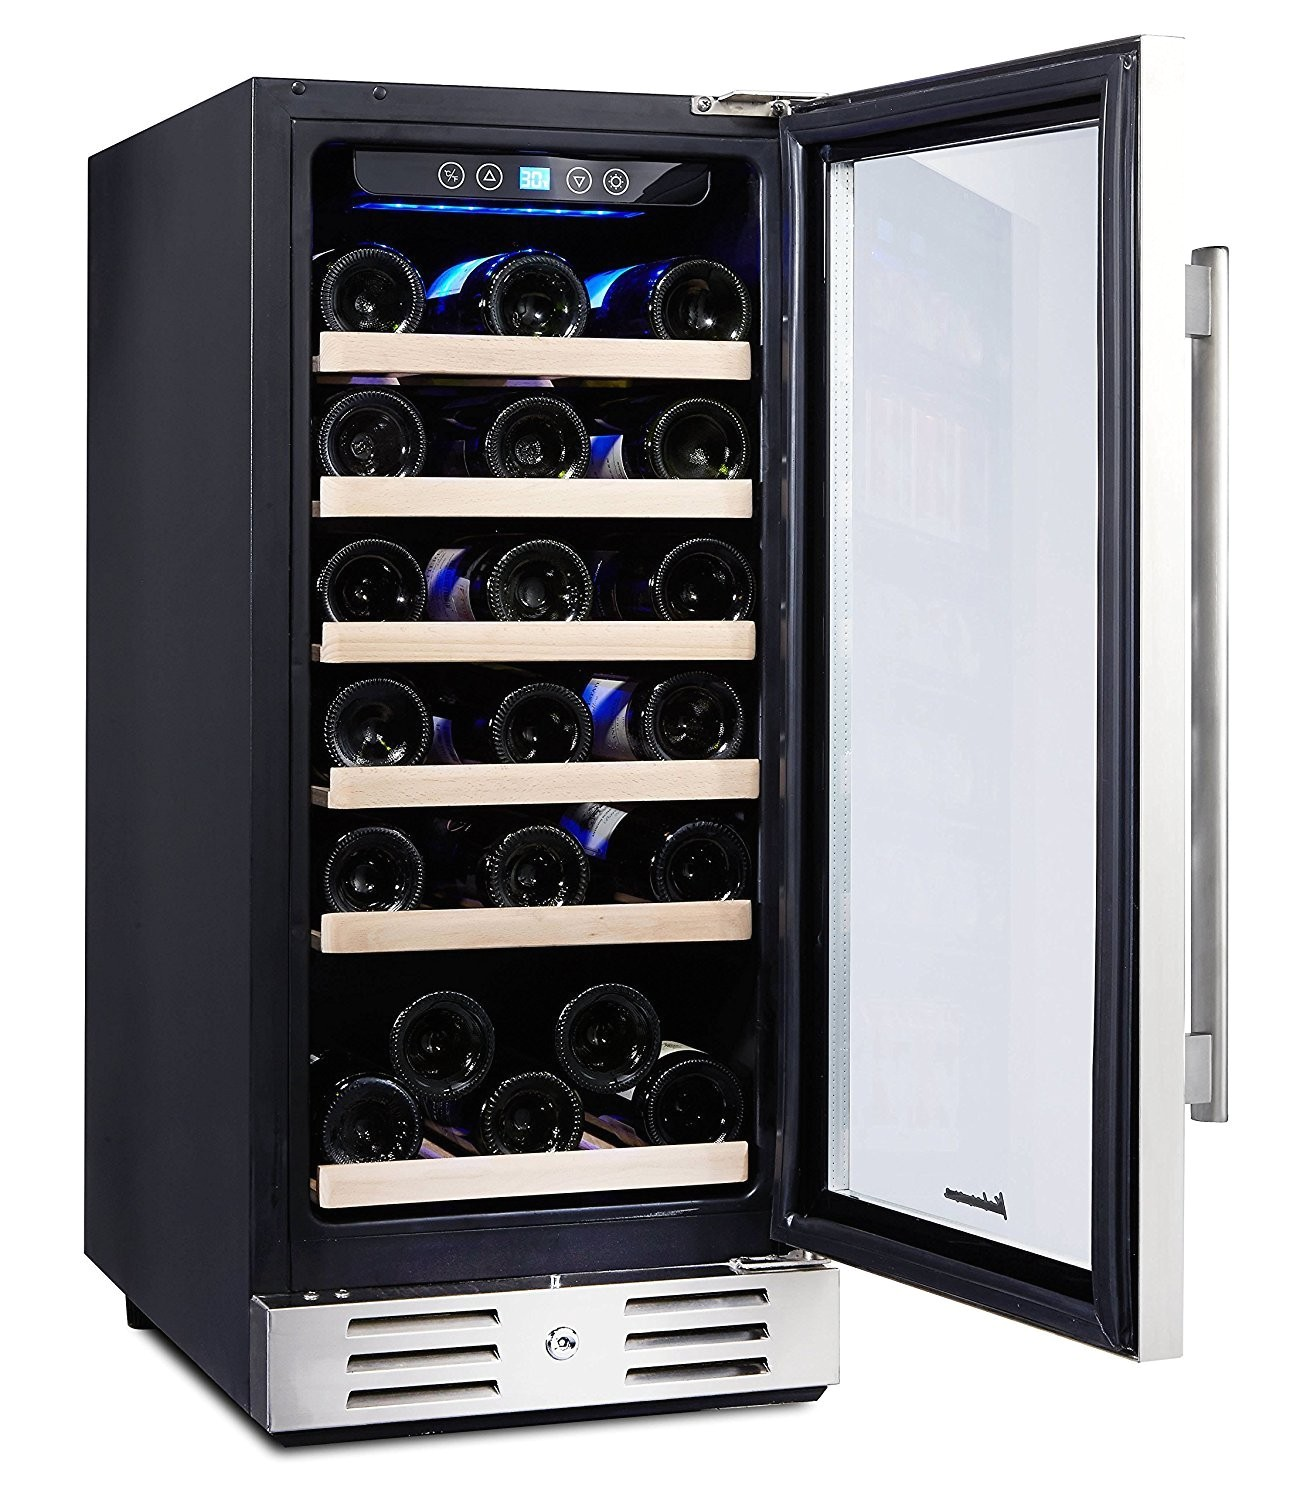 kalamera 30 bottle wine refrigerator detailed review